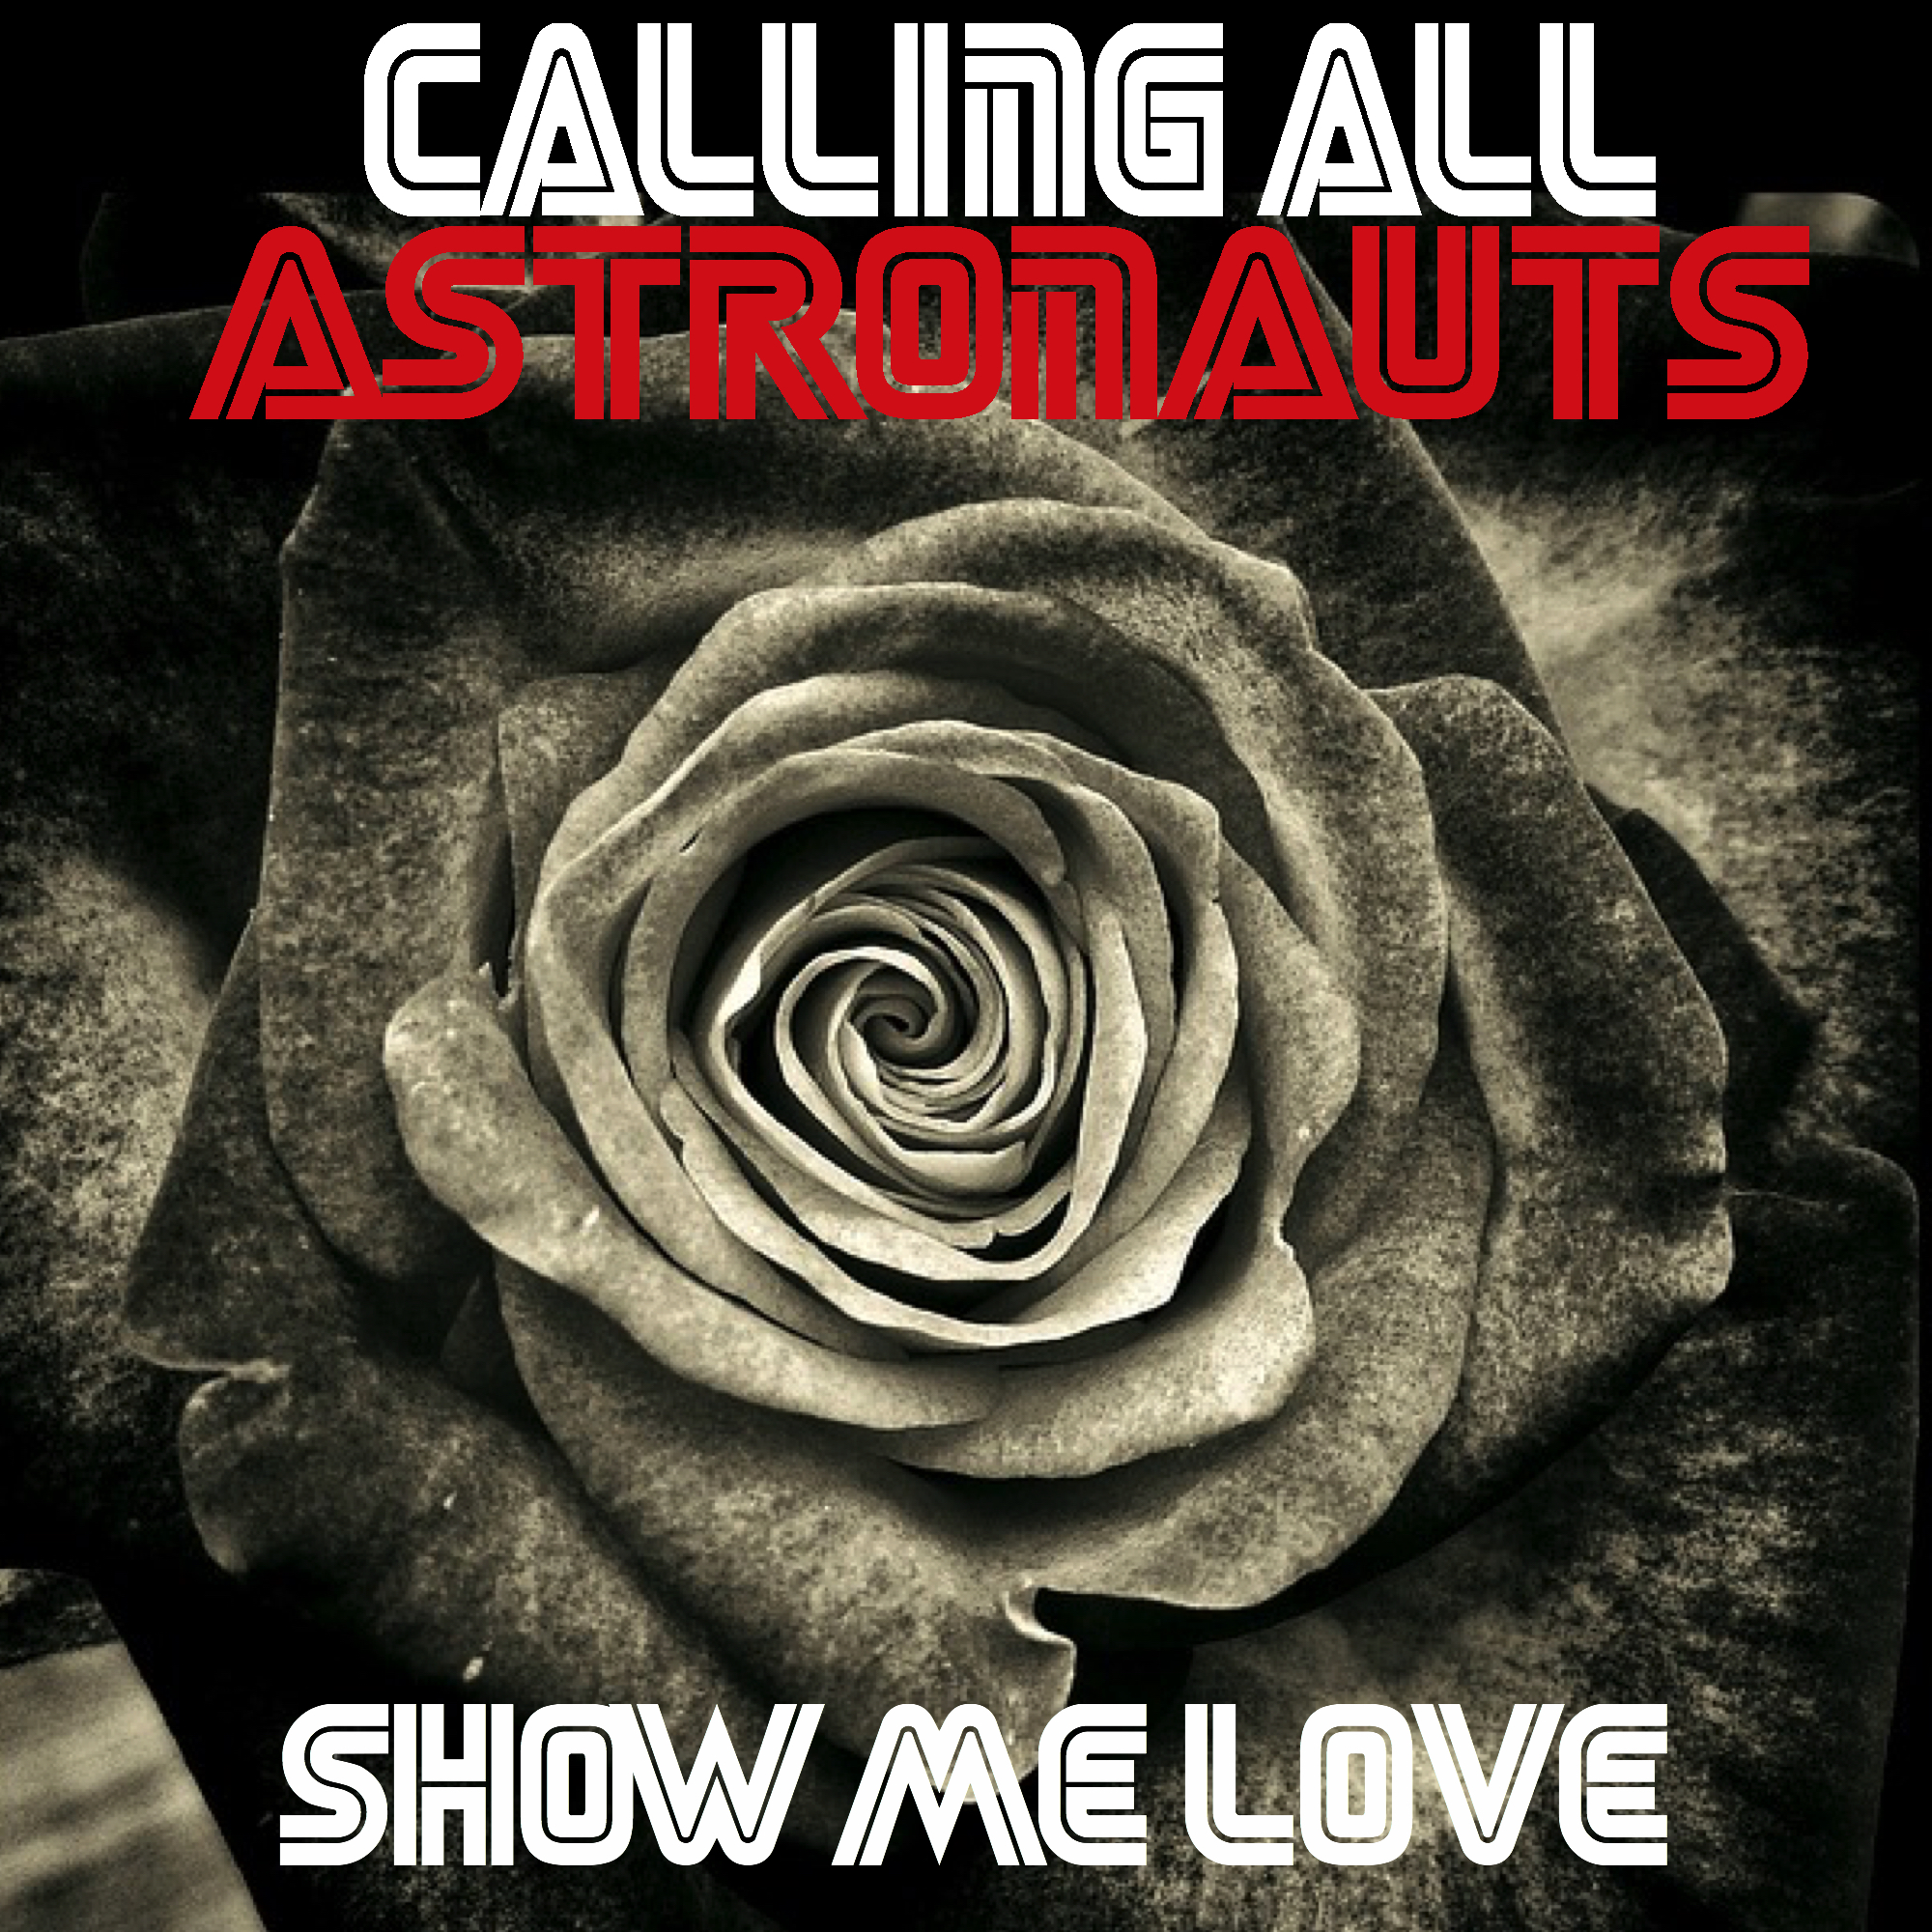 Calling All Astronauts - Show Me Love